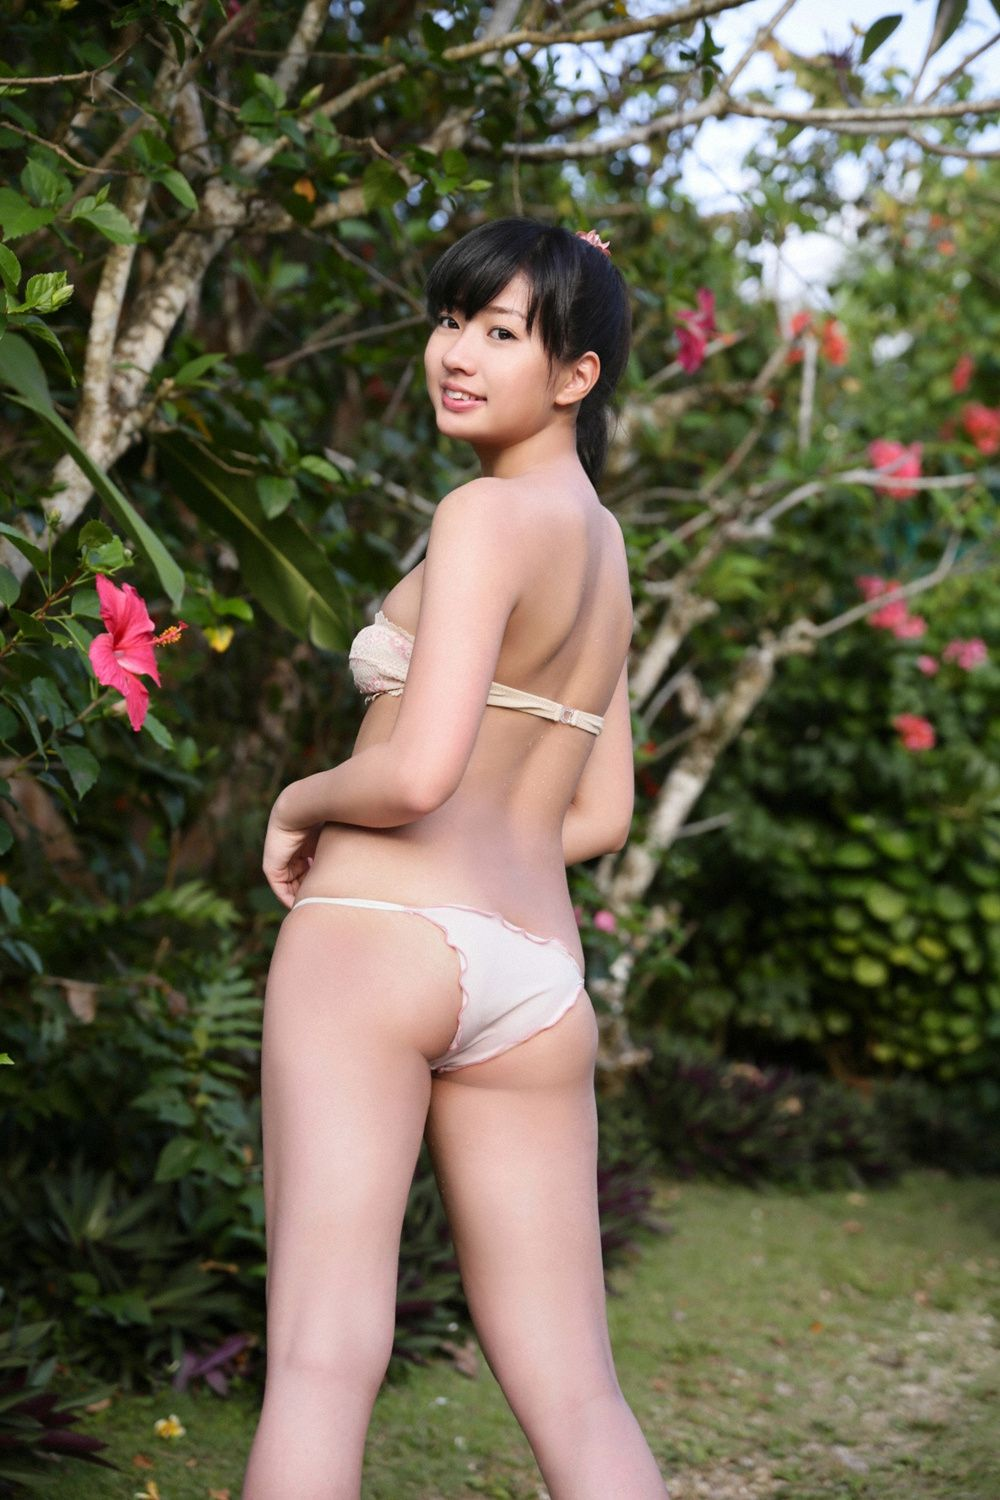 Ayaka Onuki an active female college student with a wonderful body style and fine skin040